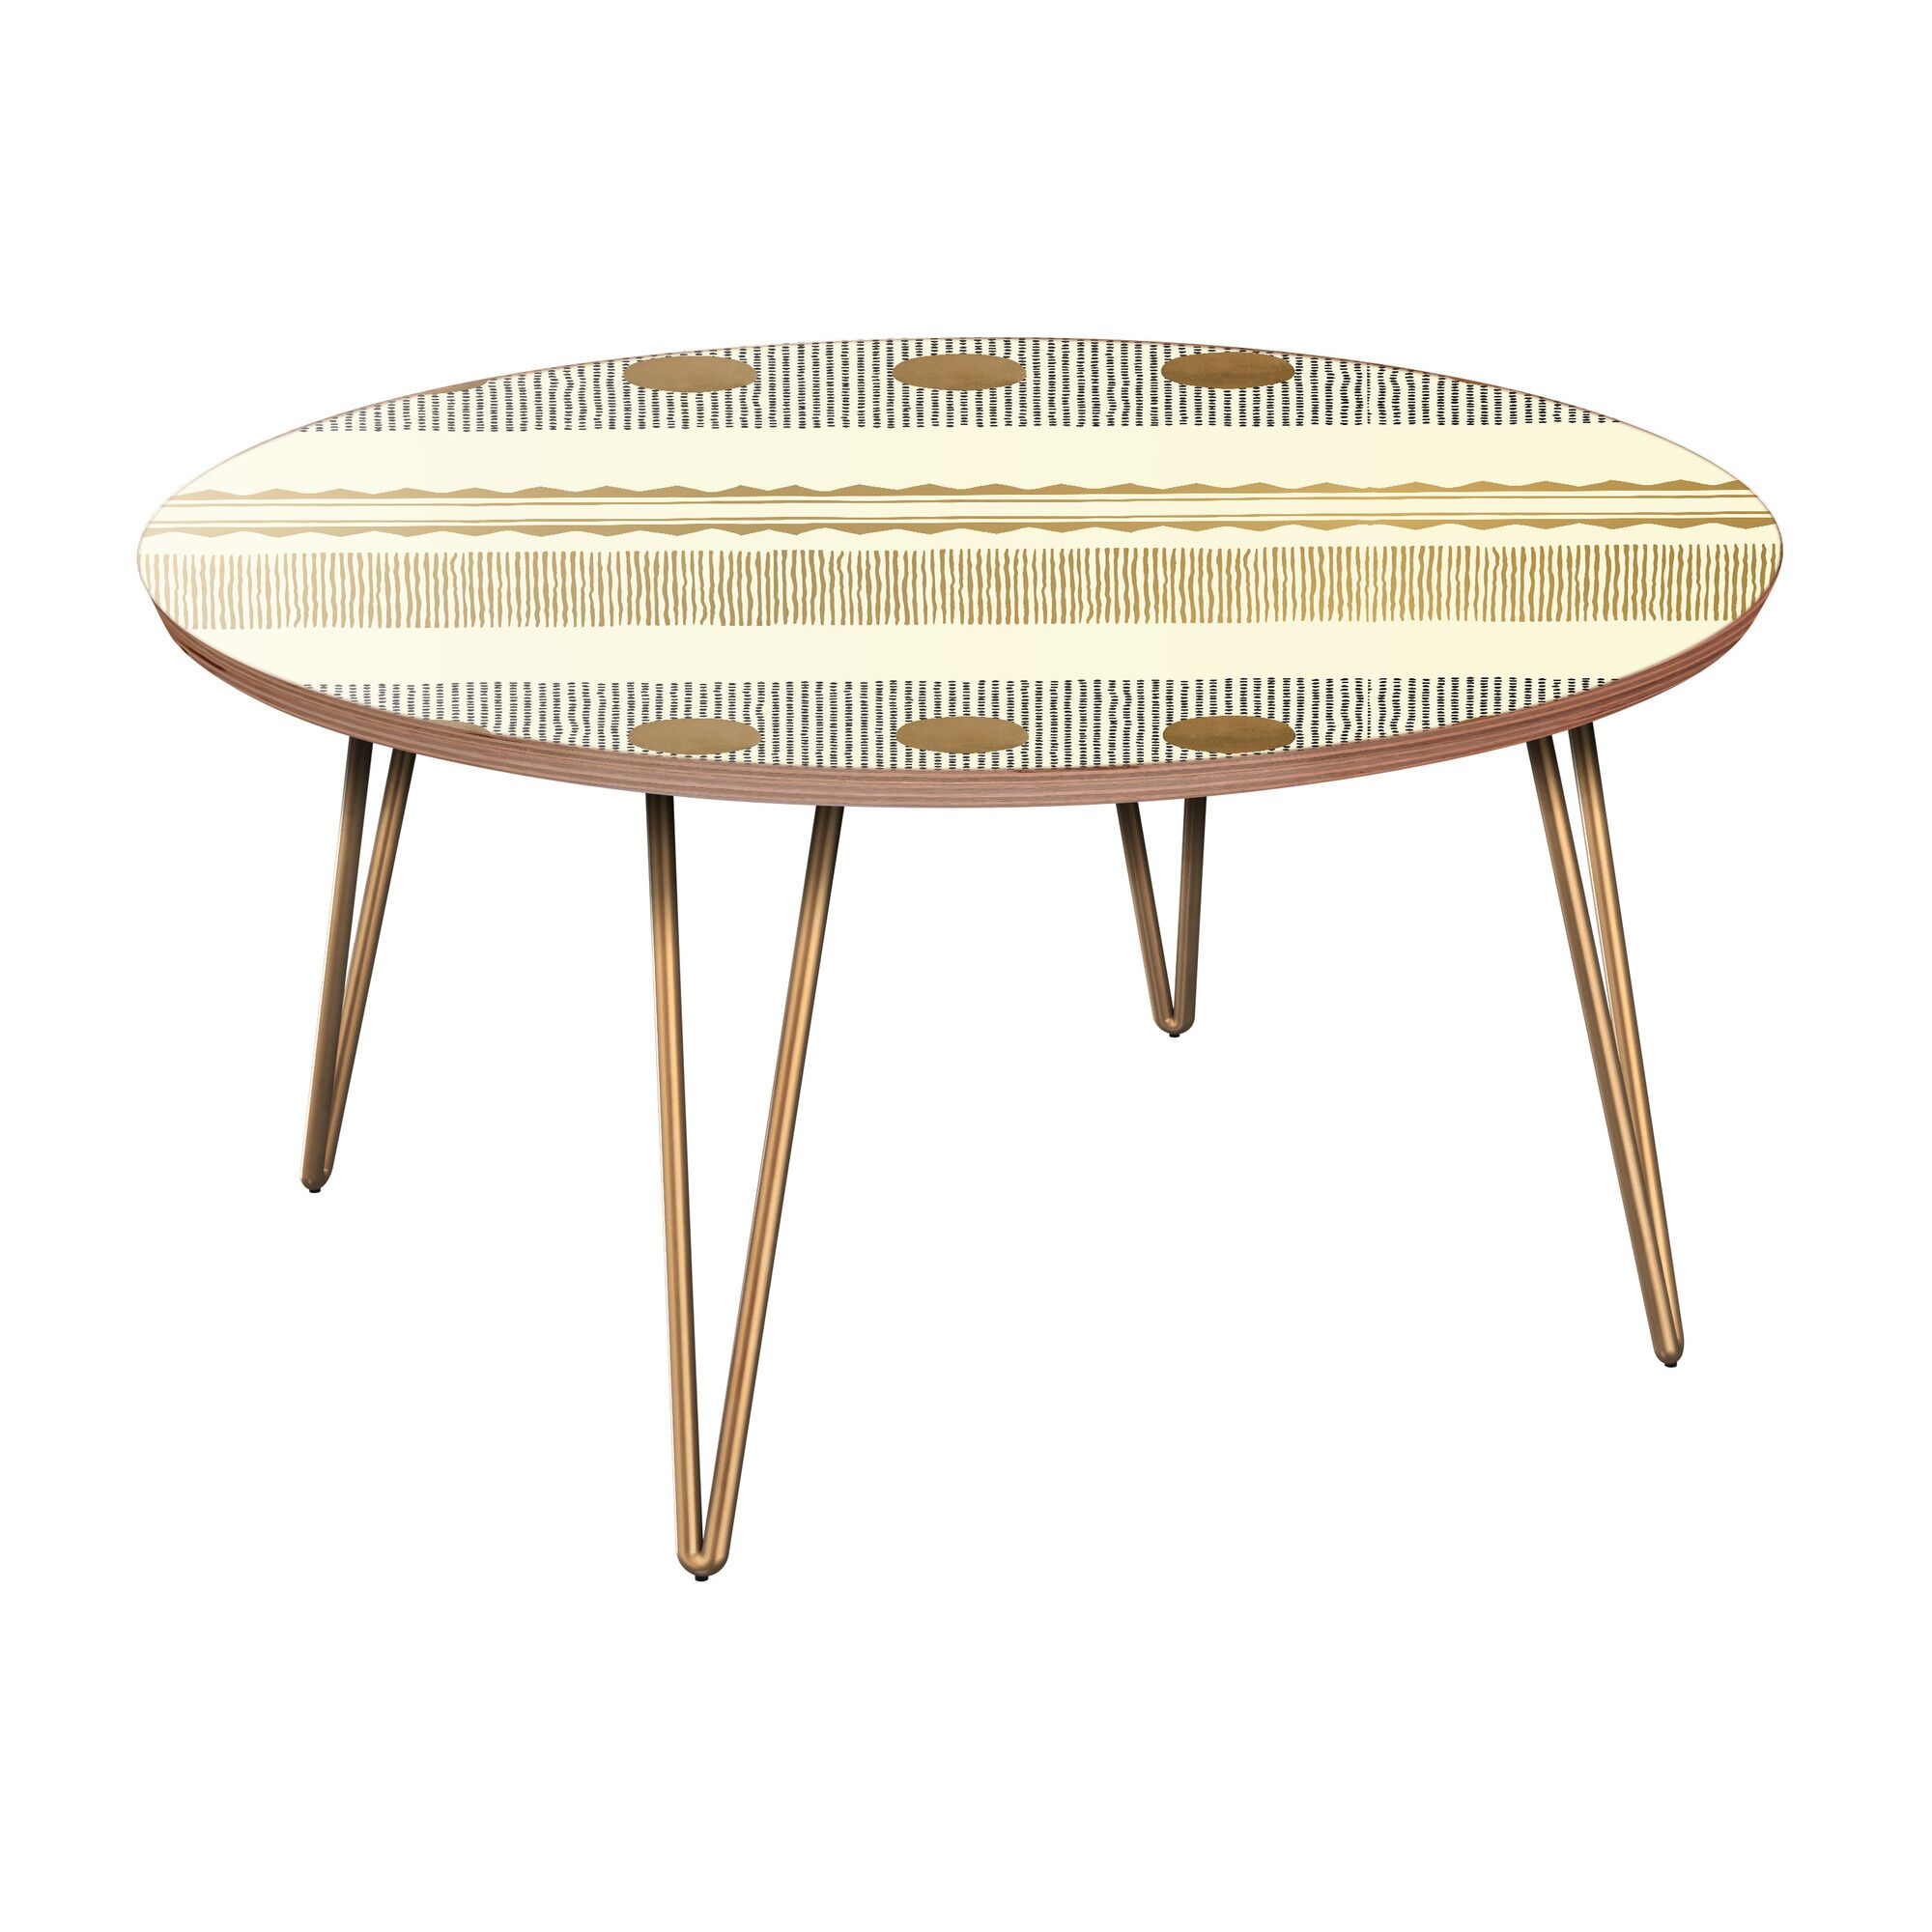 Hornbeck Coffee Table Table Base Color: Brass, Table Top Color: Walnut